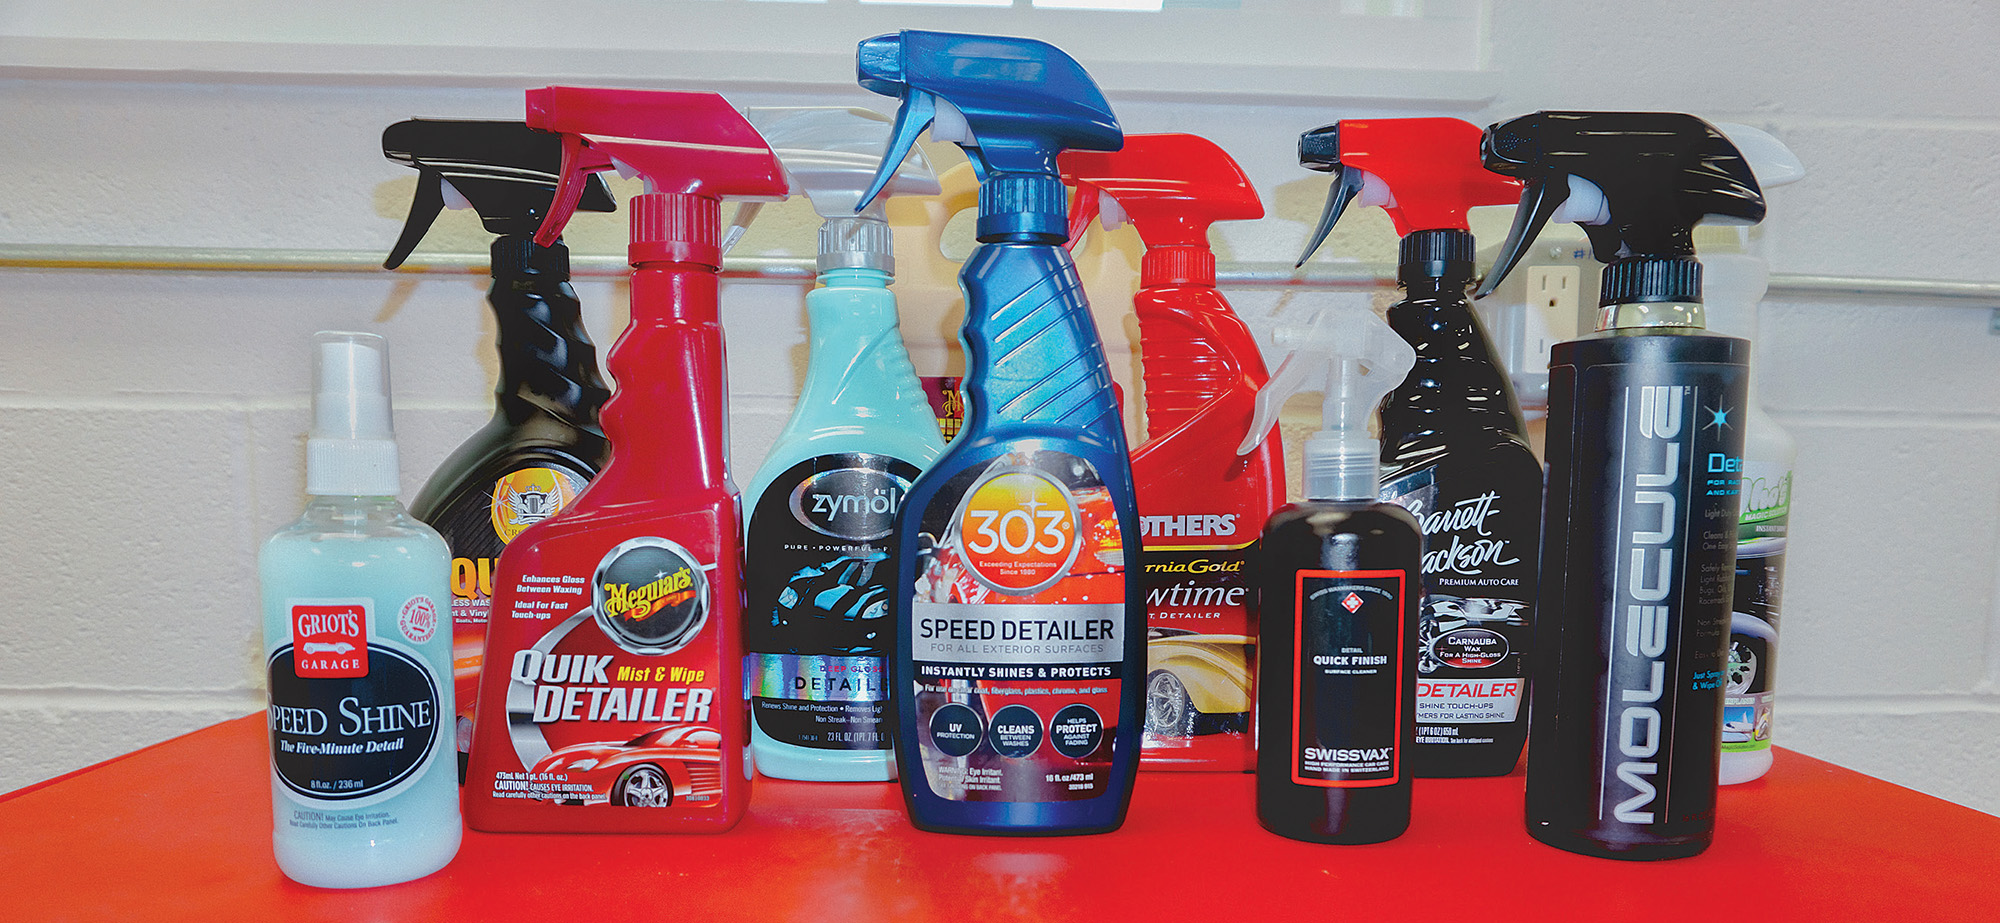 Spray Detailer Comparison Test | Articles | Classic Motorsports